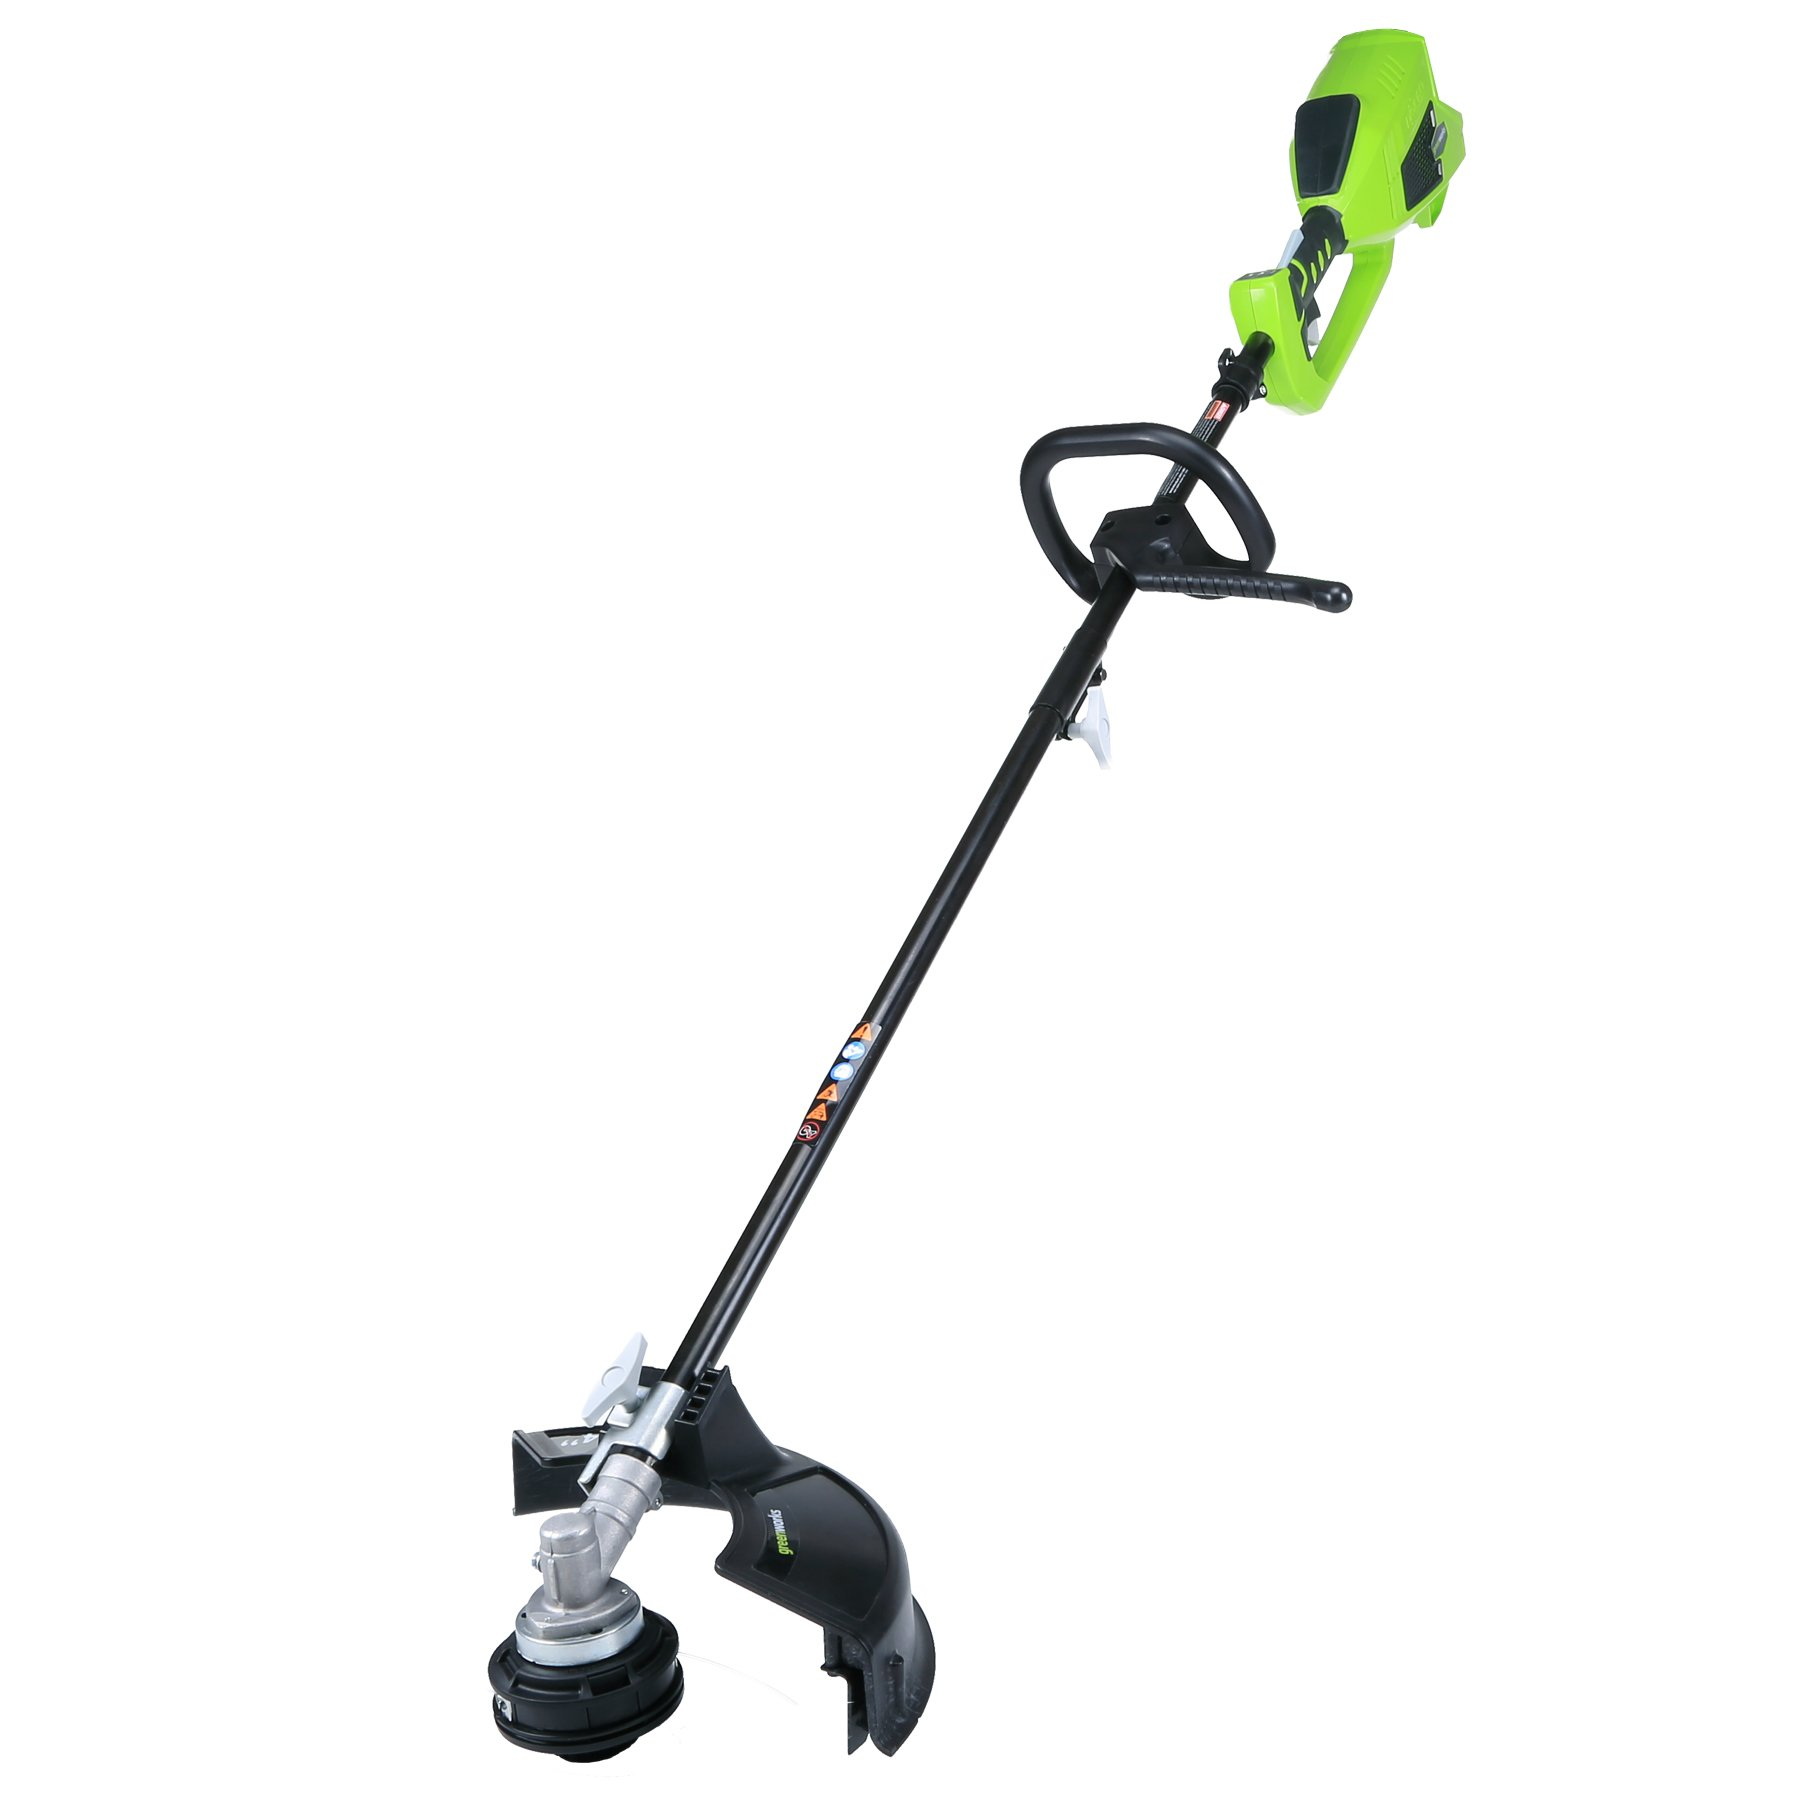 Greenworks 14-Inch 40V Cordless String Trimmer (Attachment Capable), Battery Not Included 2100202 by Greenworks